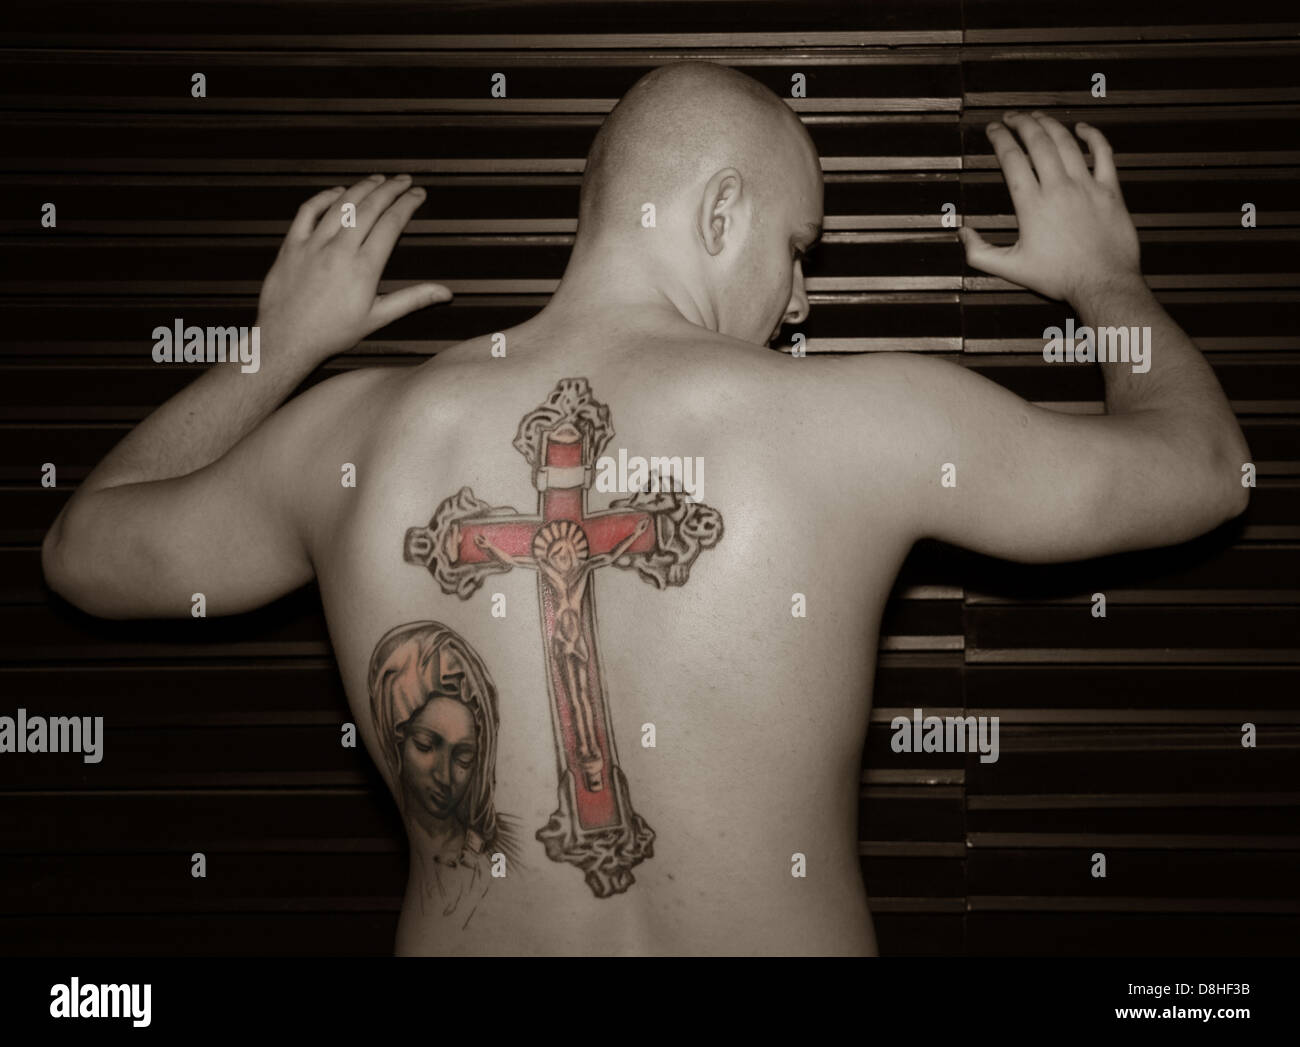 art,tat,tats,tat2,tatoo,religion,religious,catholic,sex,sexy,shaved,bald,head,headed,male,bloke,chap,against,up,wall,shutter,selective,selectively,colored,coloured,crucifixion,jesus,artwork,work,ink,skin,flesh,homoerotic,homo,erotic,sexual,in,the,boy,lokking,away,punished,being,ready,to,be,whipped,gotonysmith whip torture tortured,gotonysmith,Buy Pictures of,Buy Images Of